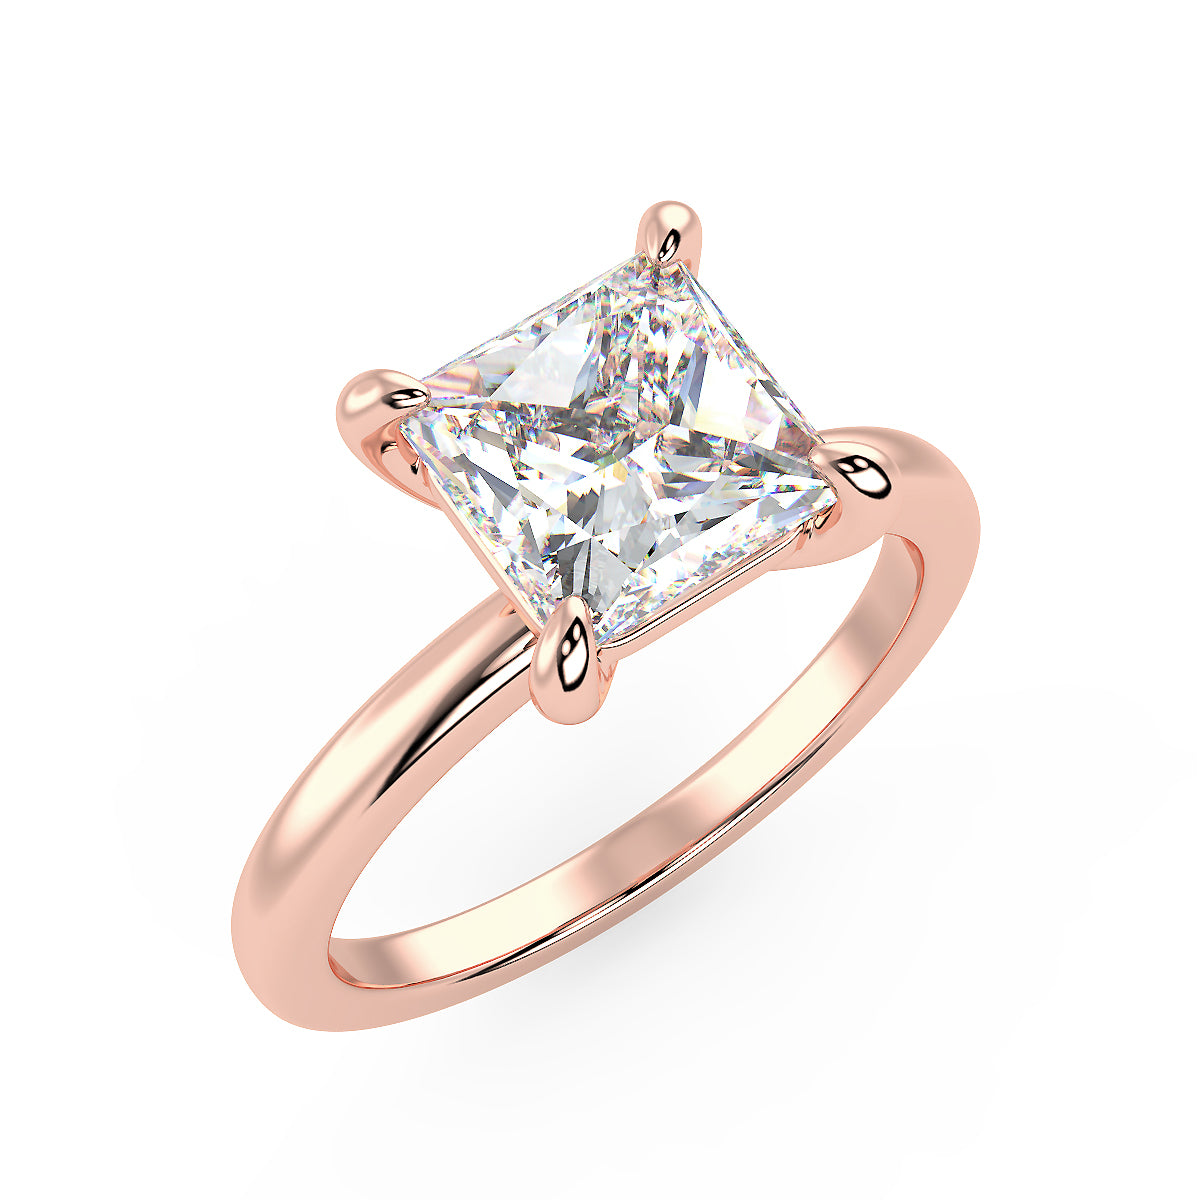 Sirius Princess Engagement Ring in Rose Gold